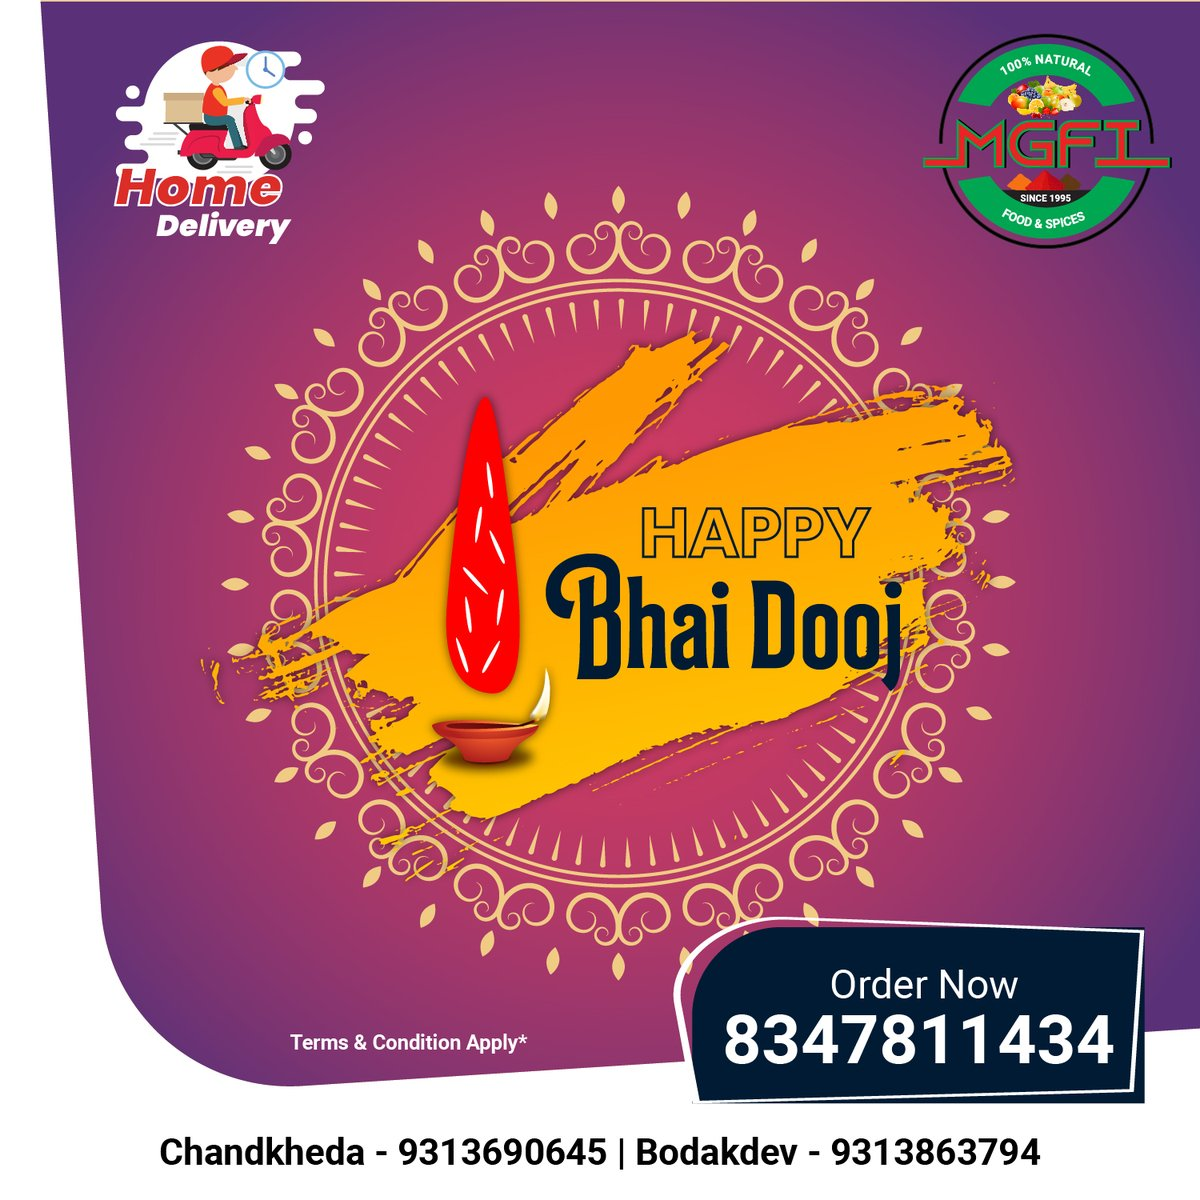 Bhai Dooj is festival of prayers from sister to brother, brother's protection for her sister. May this year we all celebrate it with even more love and protection for our sisters and brothers. Best wishes on this Bhai Dooj. . . . . . #HappyBhaiDooj #BhaiDooj2020 #MGFIFoods